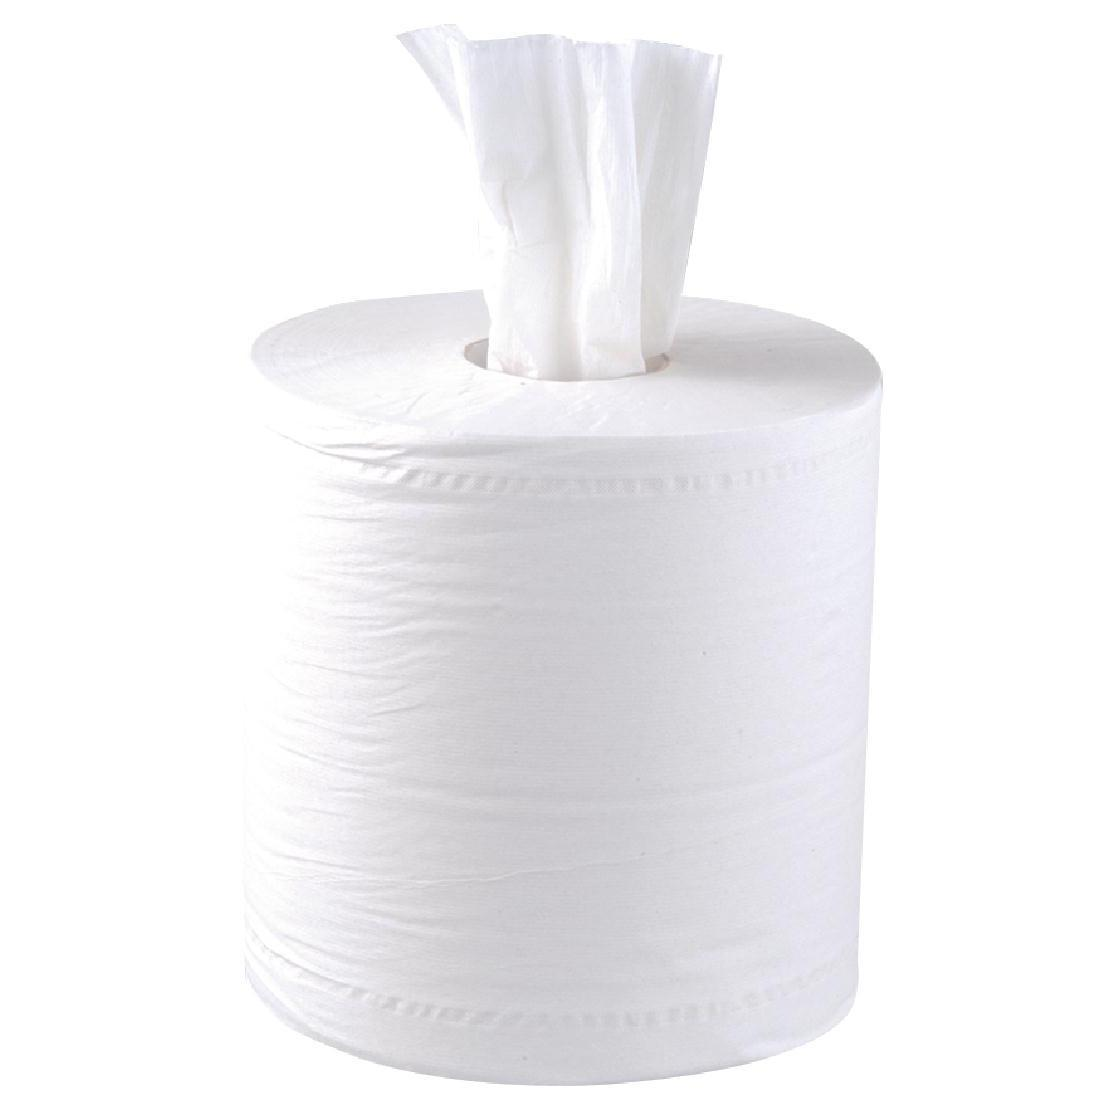 Jantex Centrefeed White Rolls 2ply 6 Pack